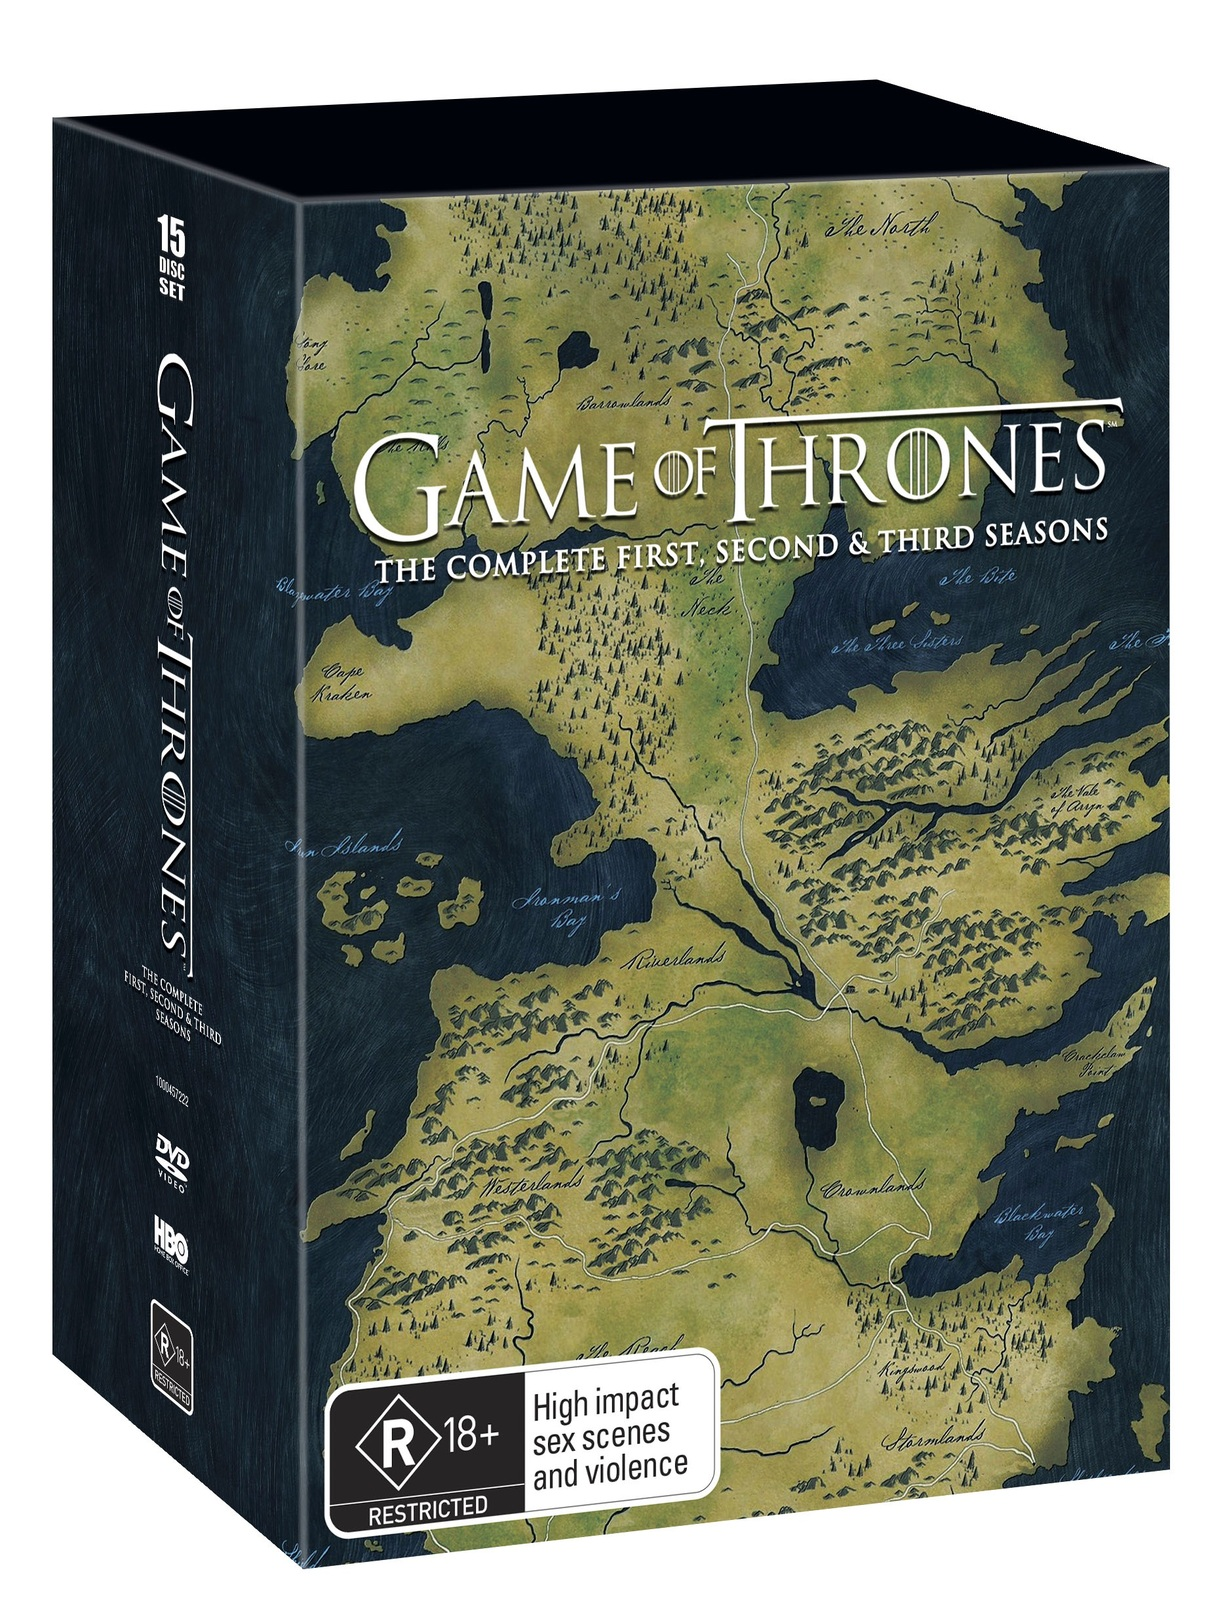 Amazon.com: Game of Thrones: The Complete Seasons 1-7 (DVD ...